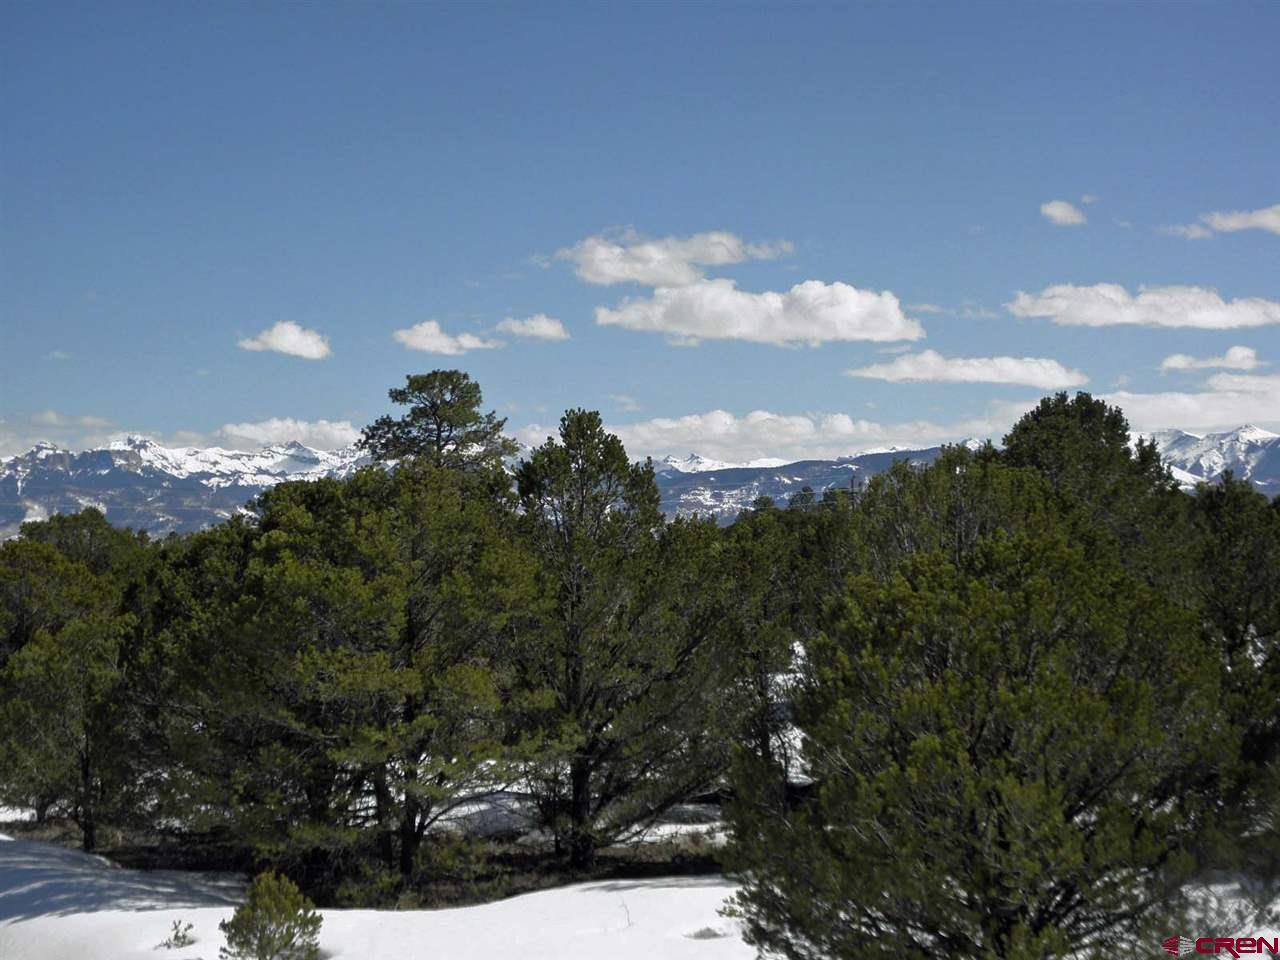 Great Views of Sneffels and Cimarron Ranges of the San Juan Mts.  on a private 4+ acre property.  Mature Ponderosa Pines and Pinion Pines.  Lots of great building sites on the property.  Paved road access.  All utilities under ground to the lot line.  This is one of the best lots in the area.  Make sure you see this lot.  All of the photos were taken on the property at various locations on the lot, some from the ground and some from a ladder.  The second floor of the house you build on this lot have almost 360 degree views, Mt. Sneffels, Cimarrons and all the way to the north to Grand Mesa.